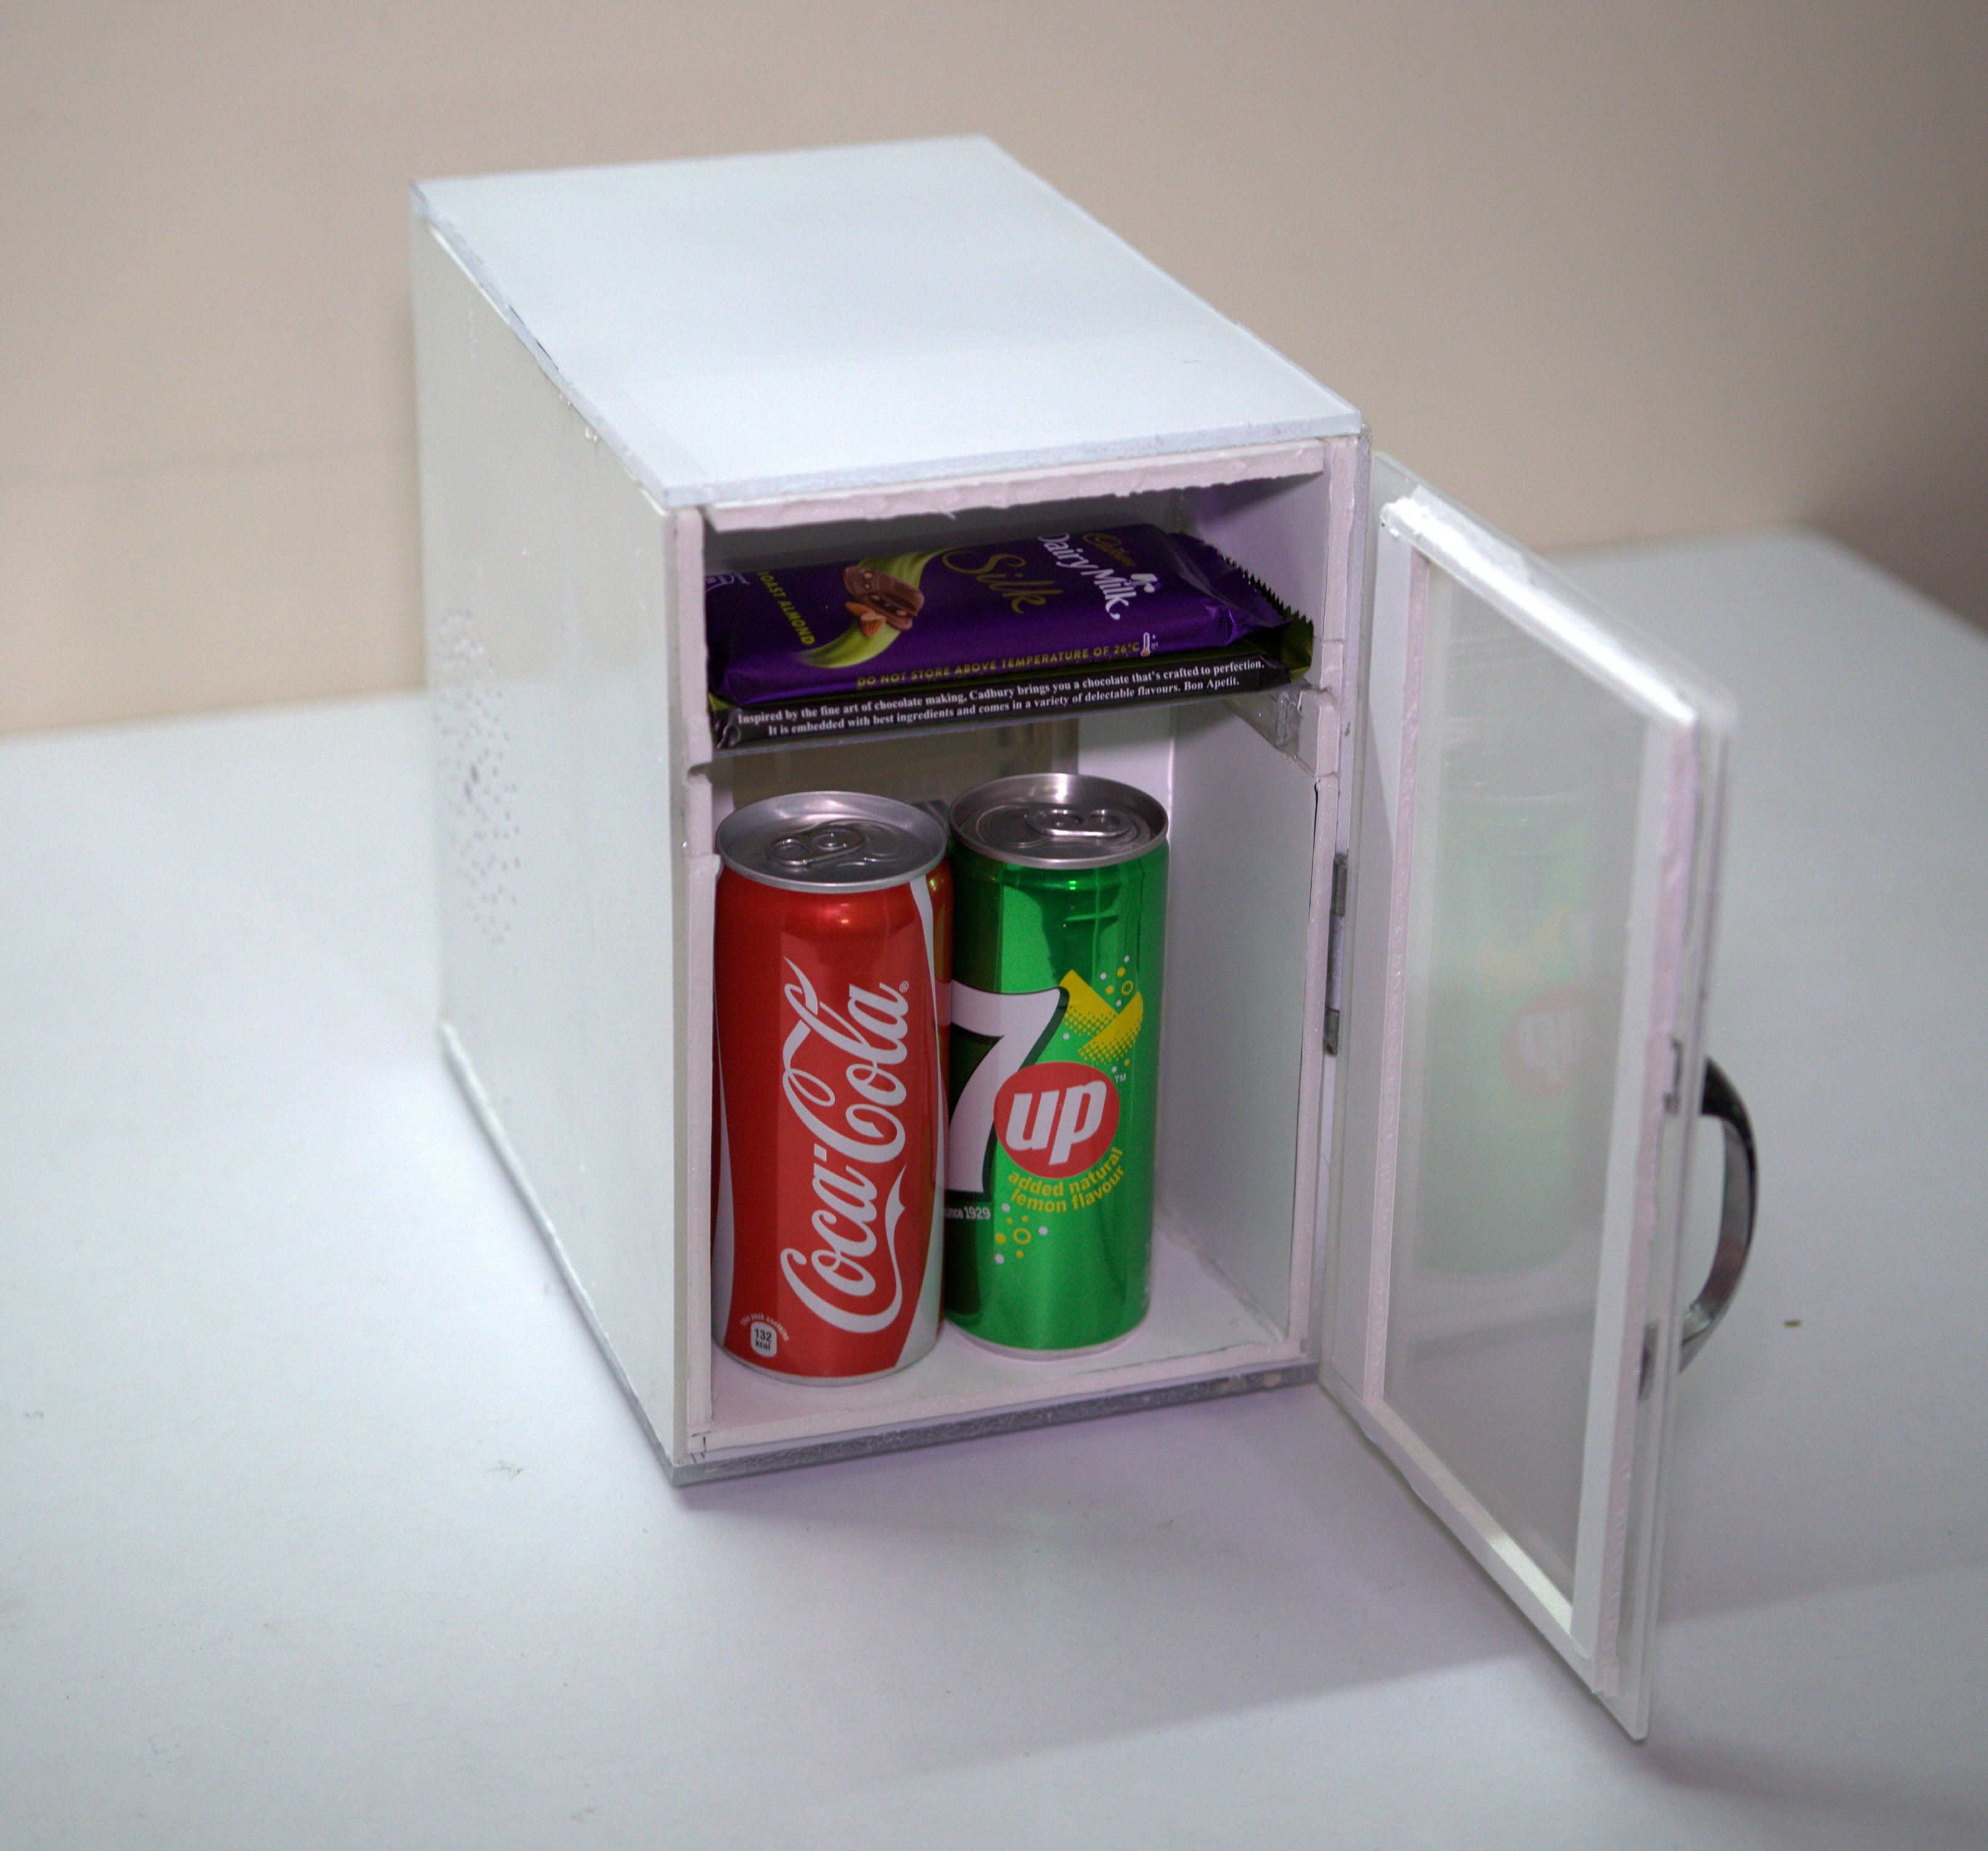 Diy Portable Mini Refrigerator 19 Steps With Pictures Instructables